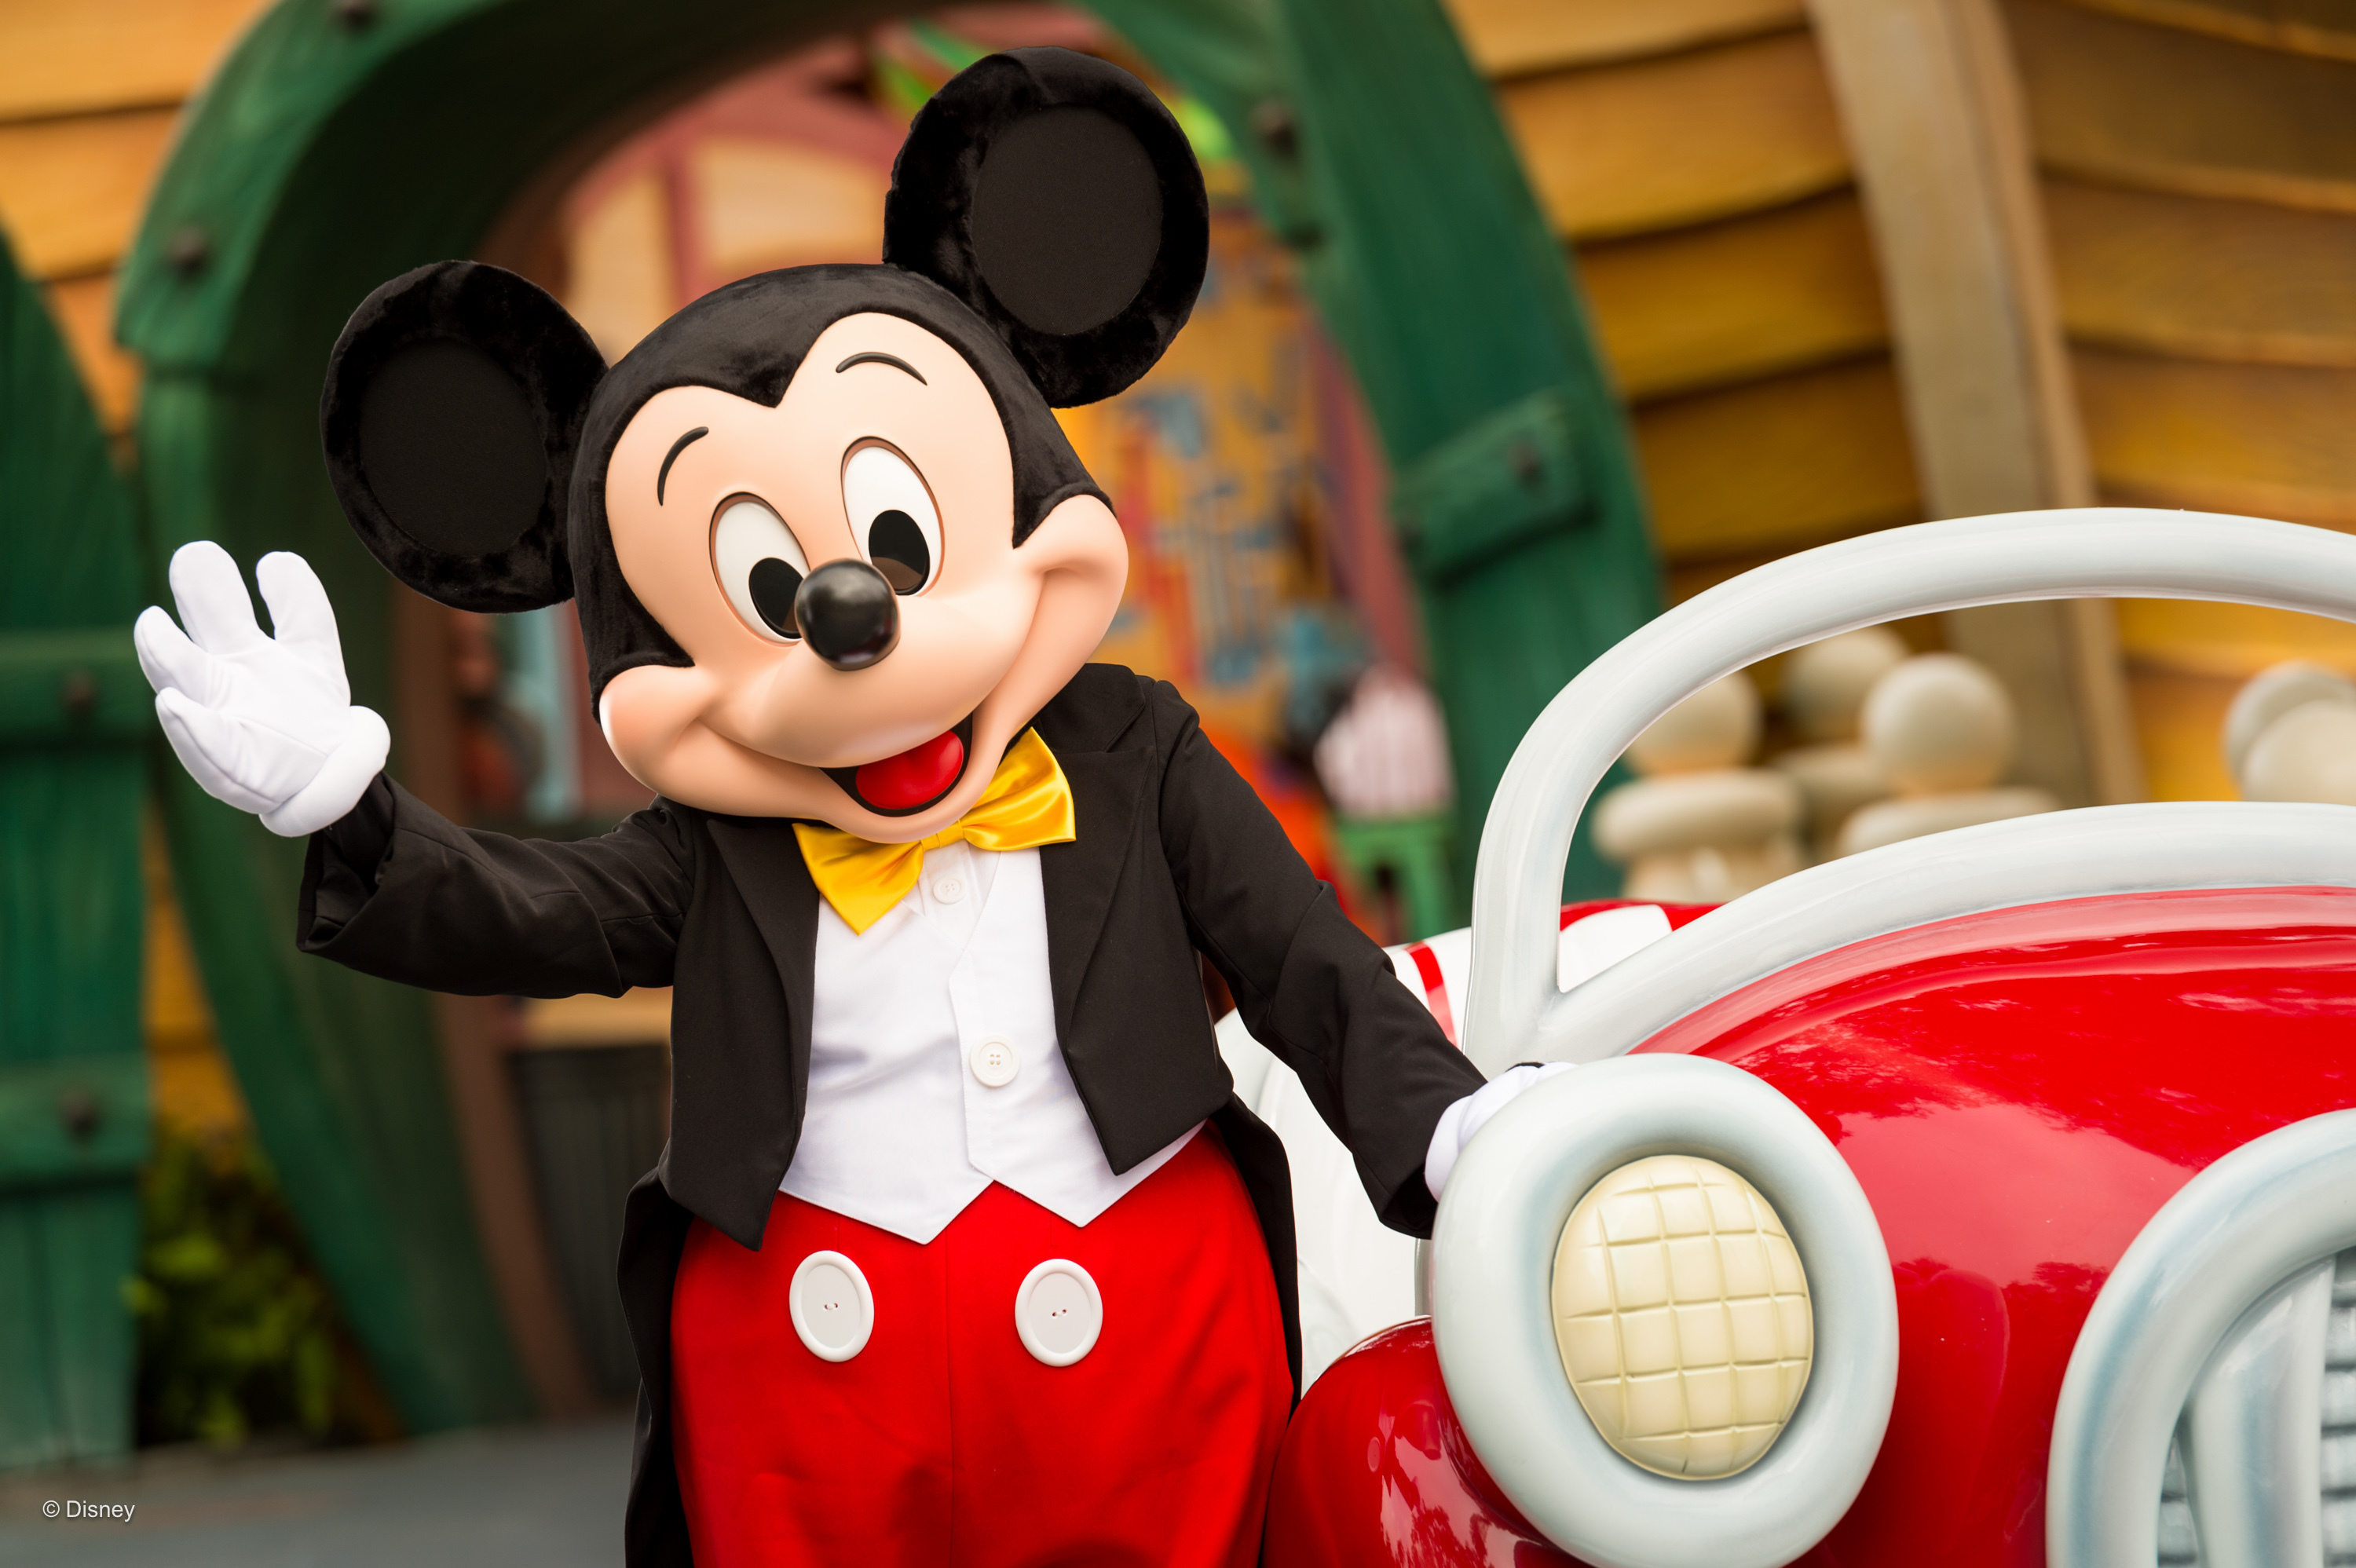 Disney Celebrates 90 Years of Mickey Mouse with Worldwide Festivities